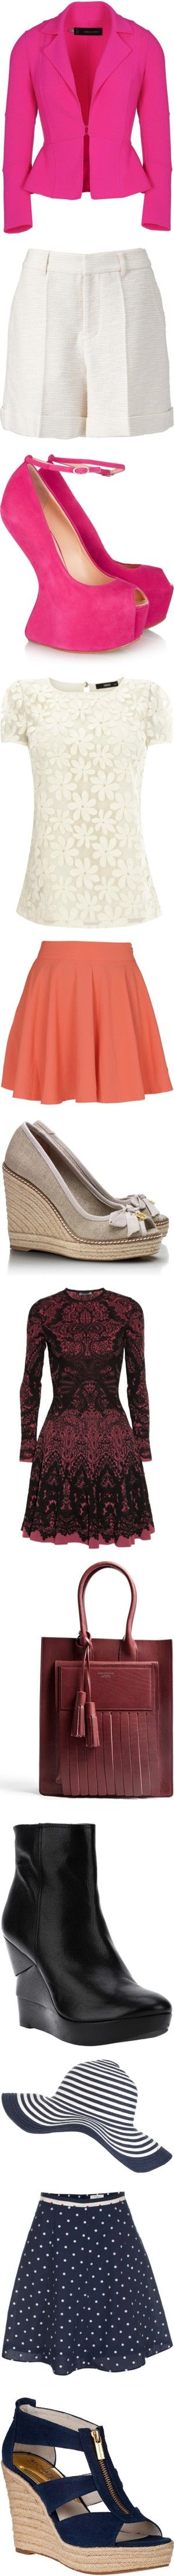 """Wedges"" by desyderia ❤ liked on Polyvore"